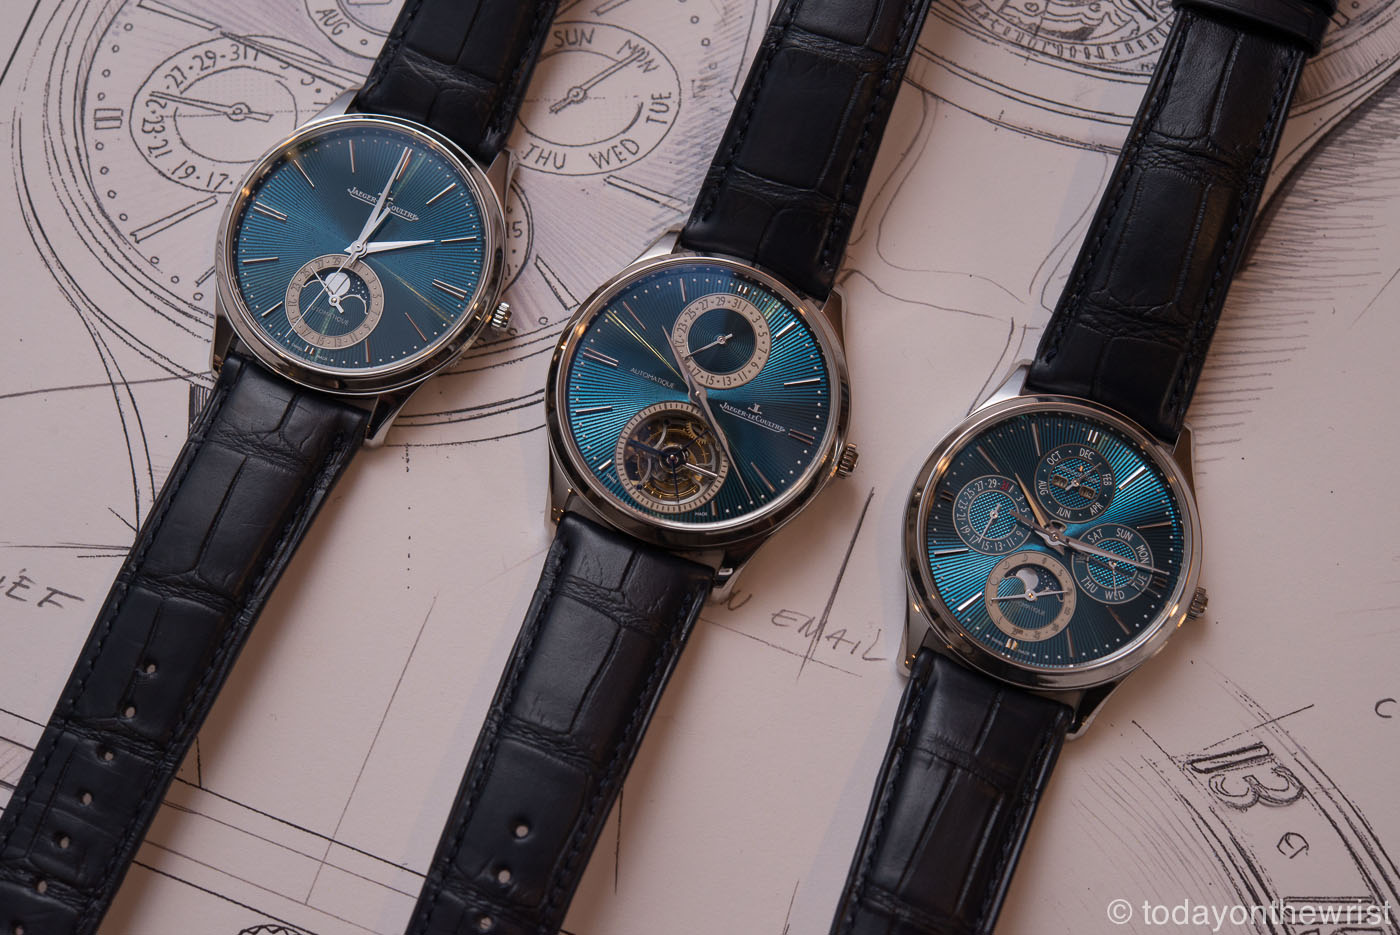 Jaeger-LeCoultre Master Ultra Thin Enamel Limited Editions